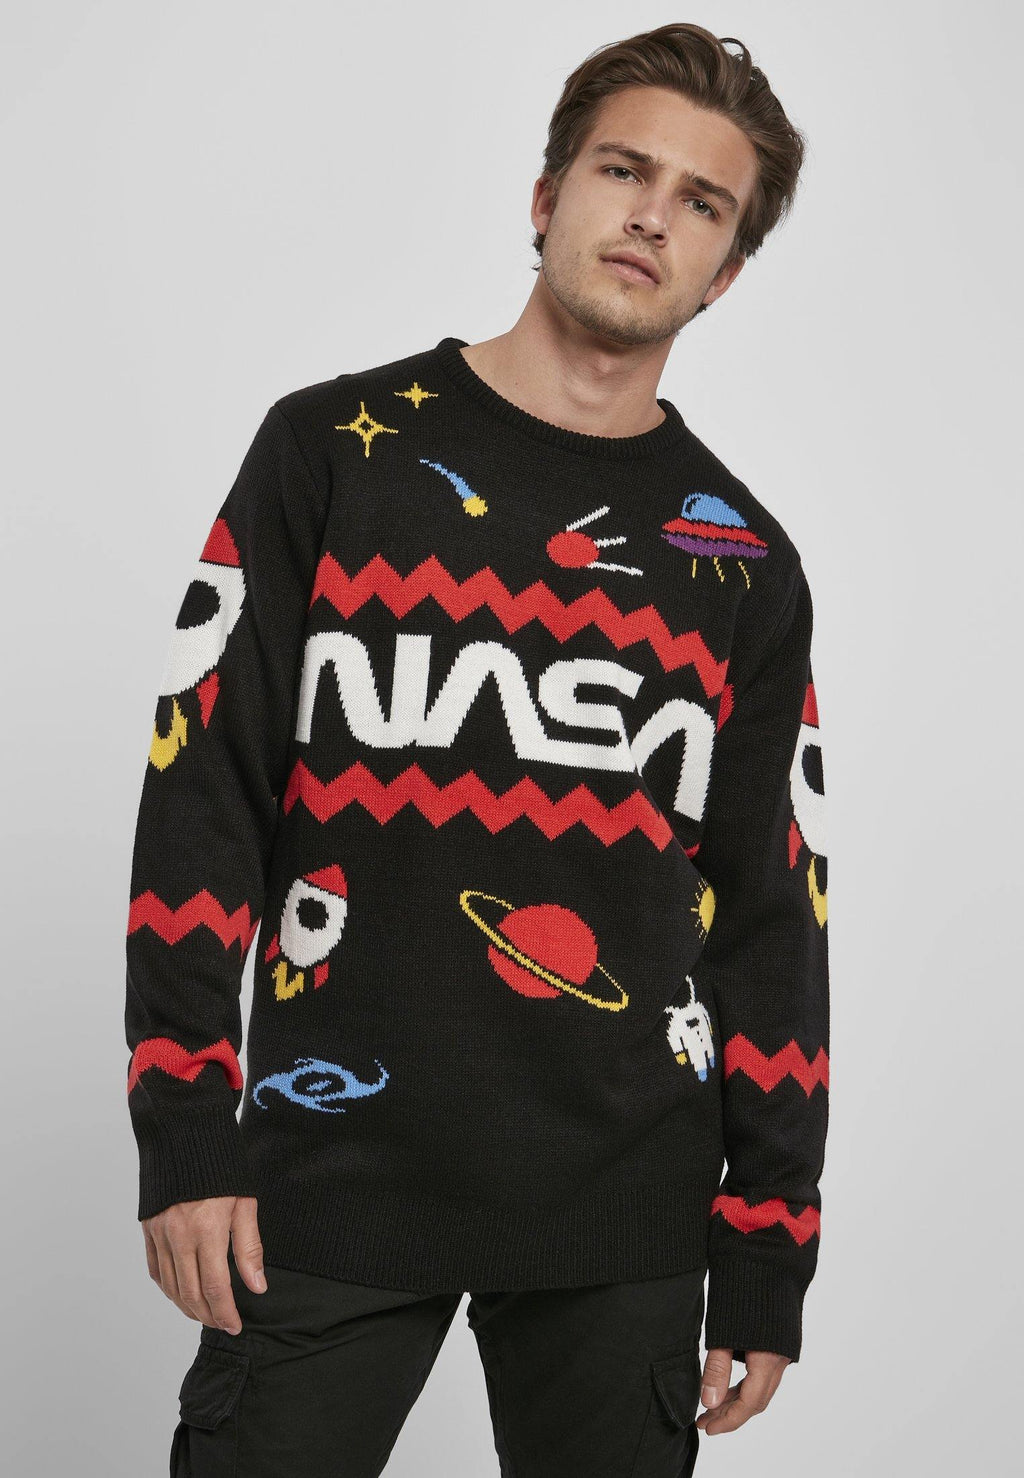 NASA Xmas Sweater - DadiTude